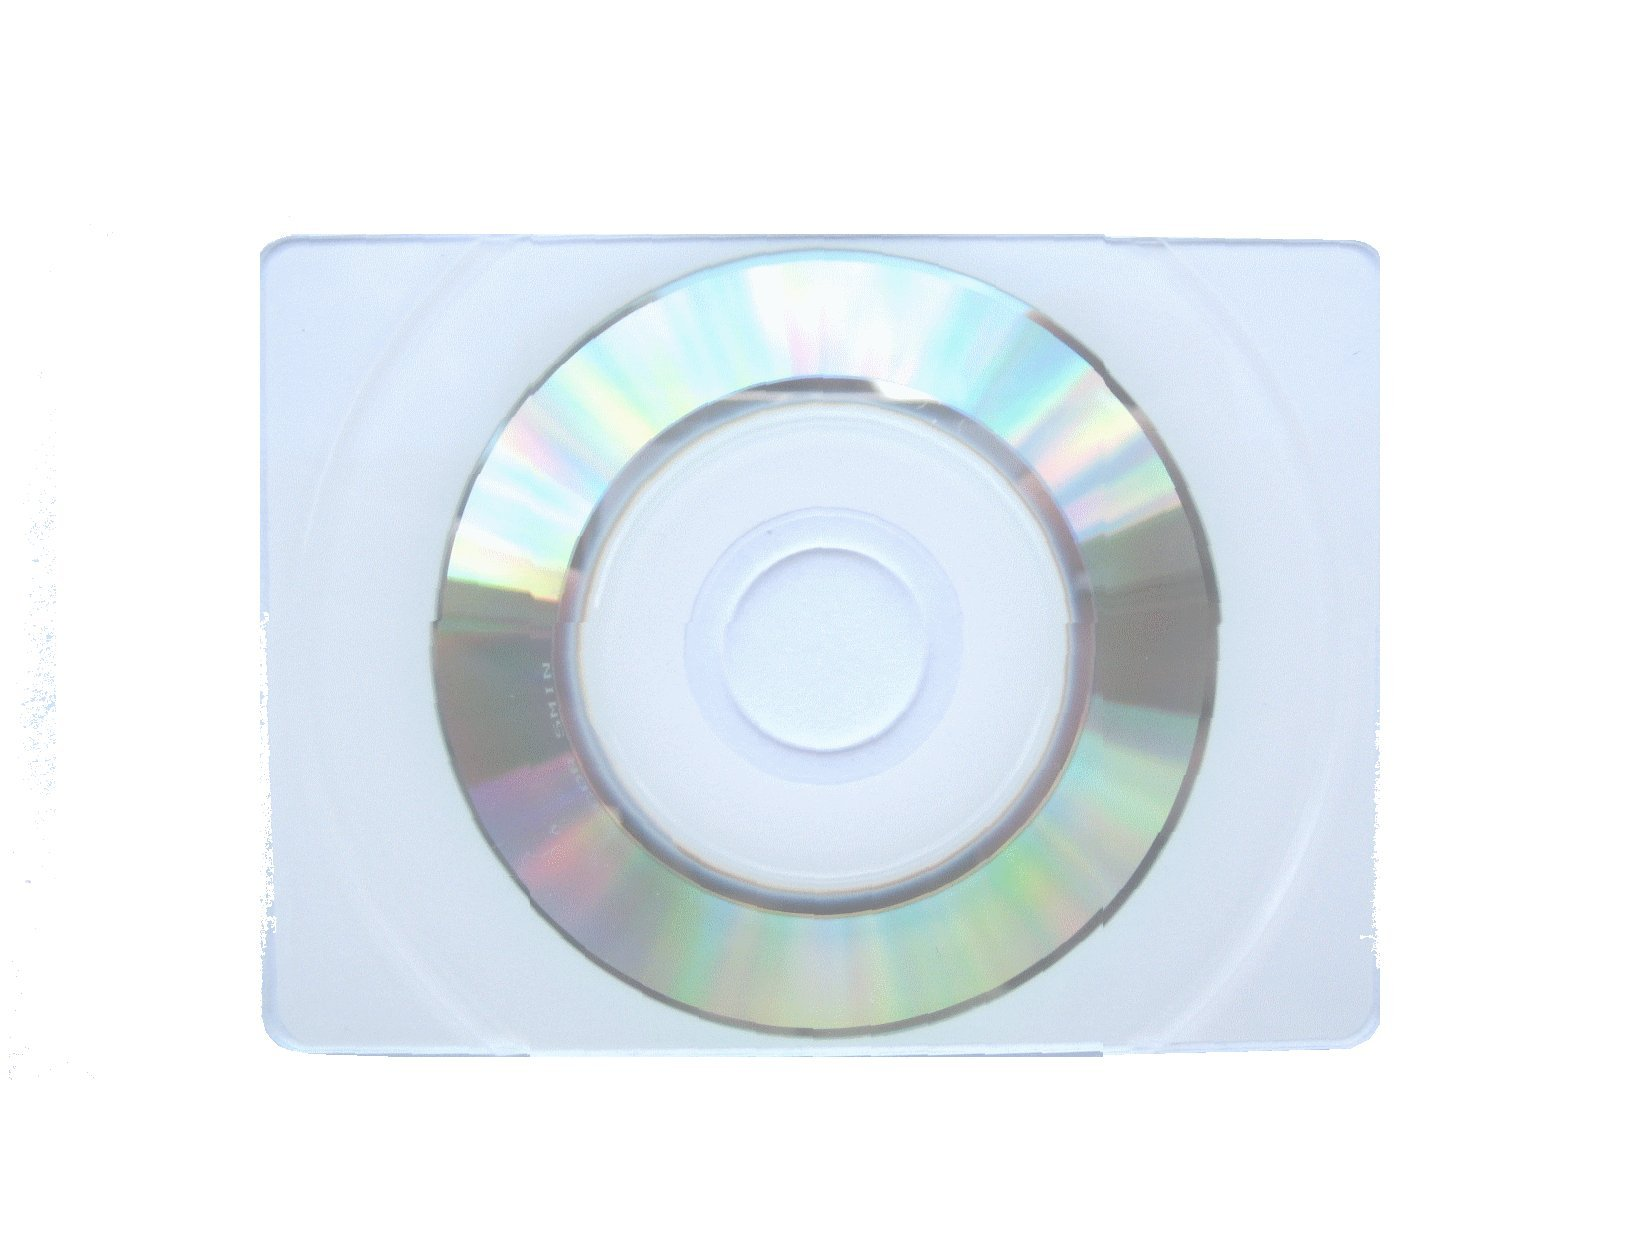 1000 True Retangular Business Card CD-R, WHITE INKJET Top, JS404 PLUS SLEEVE